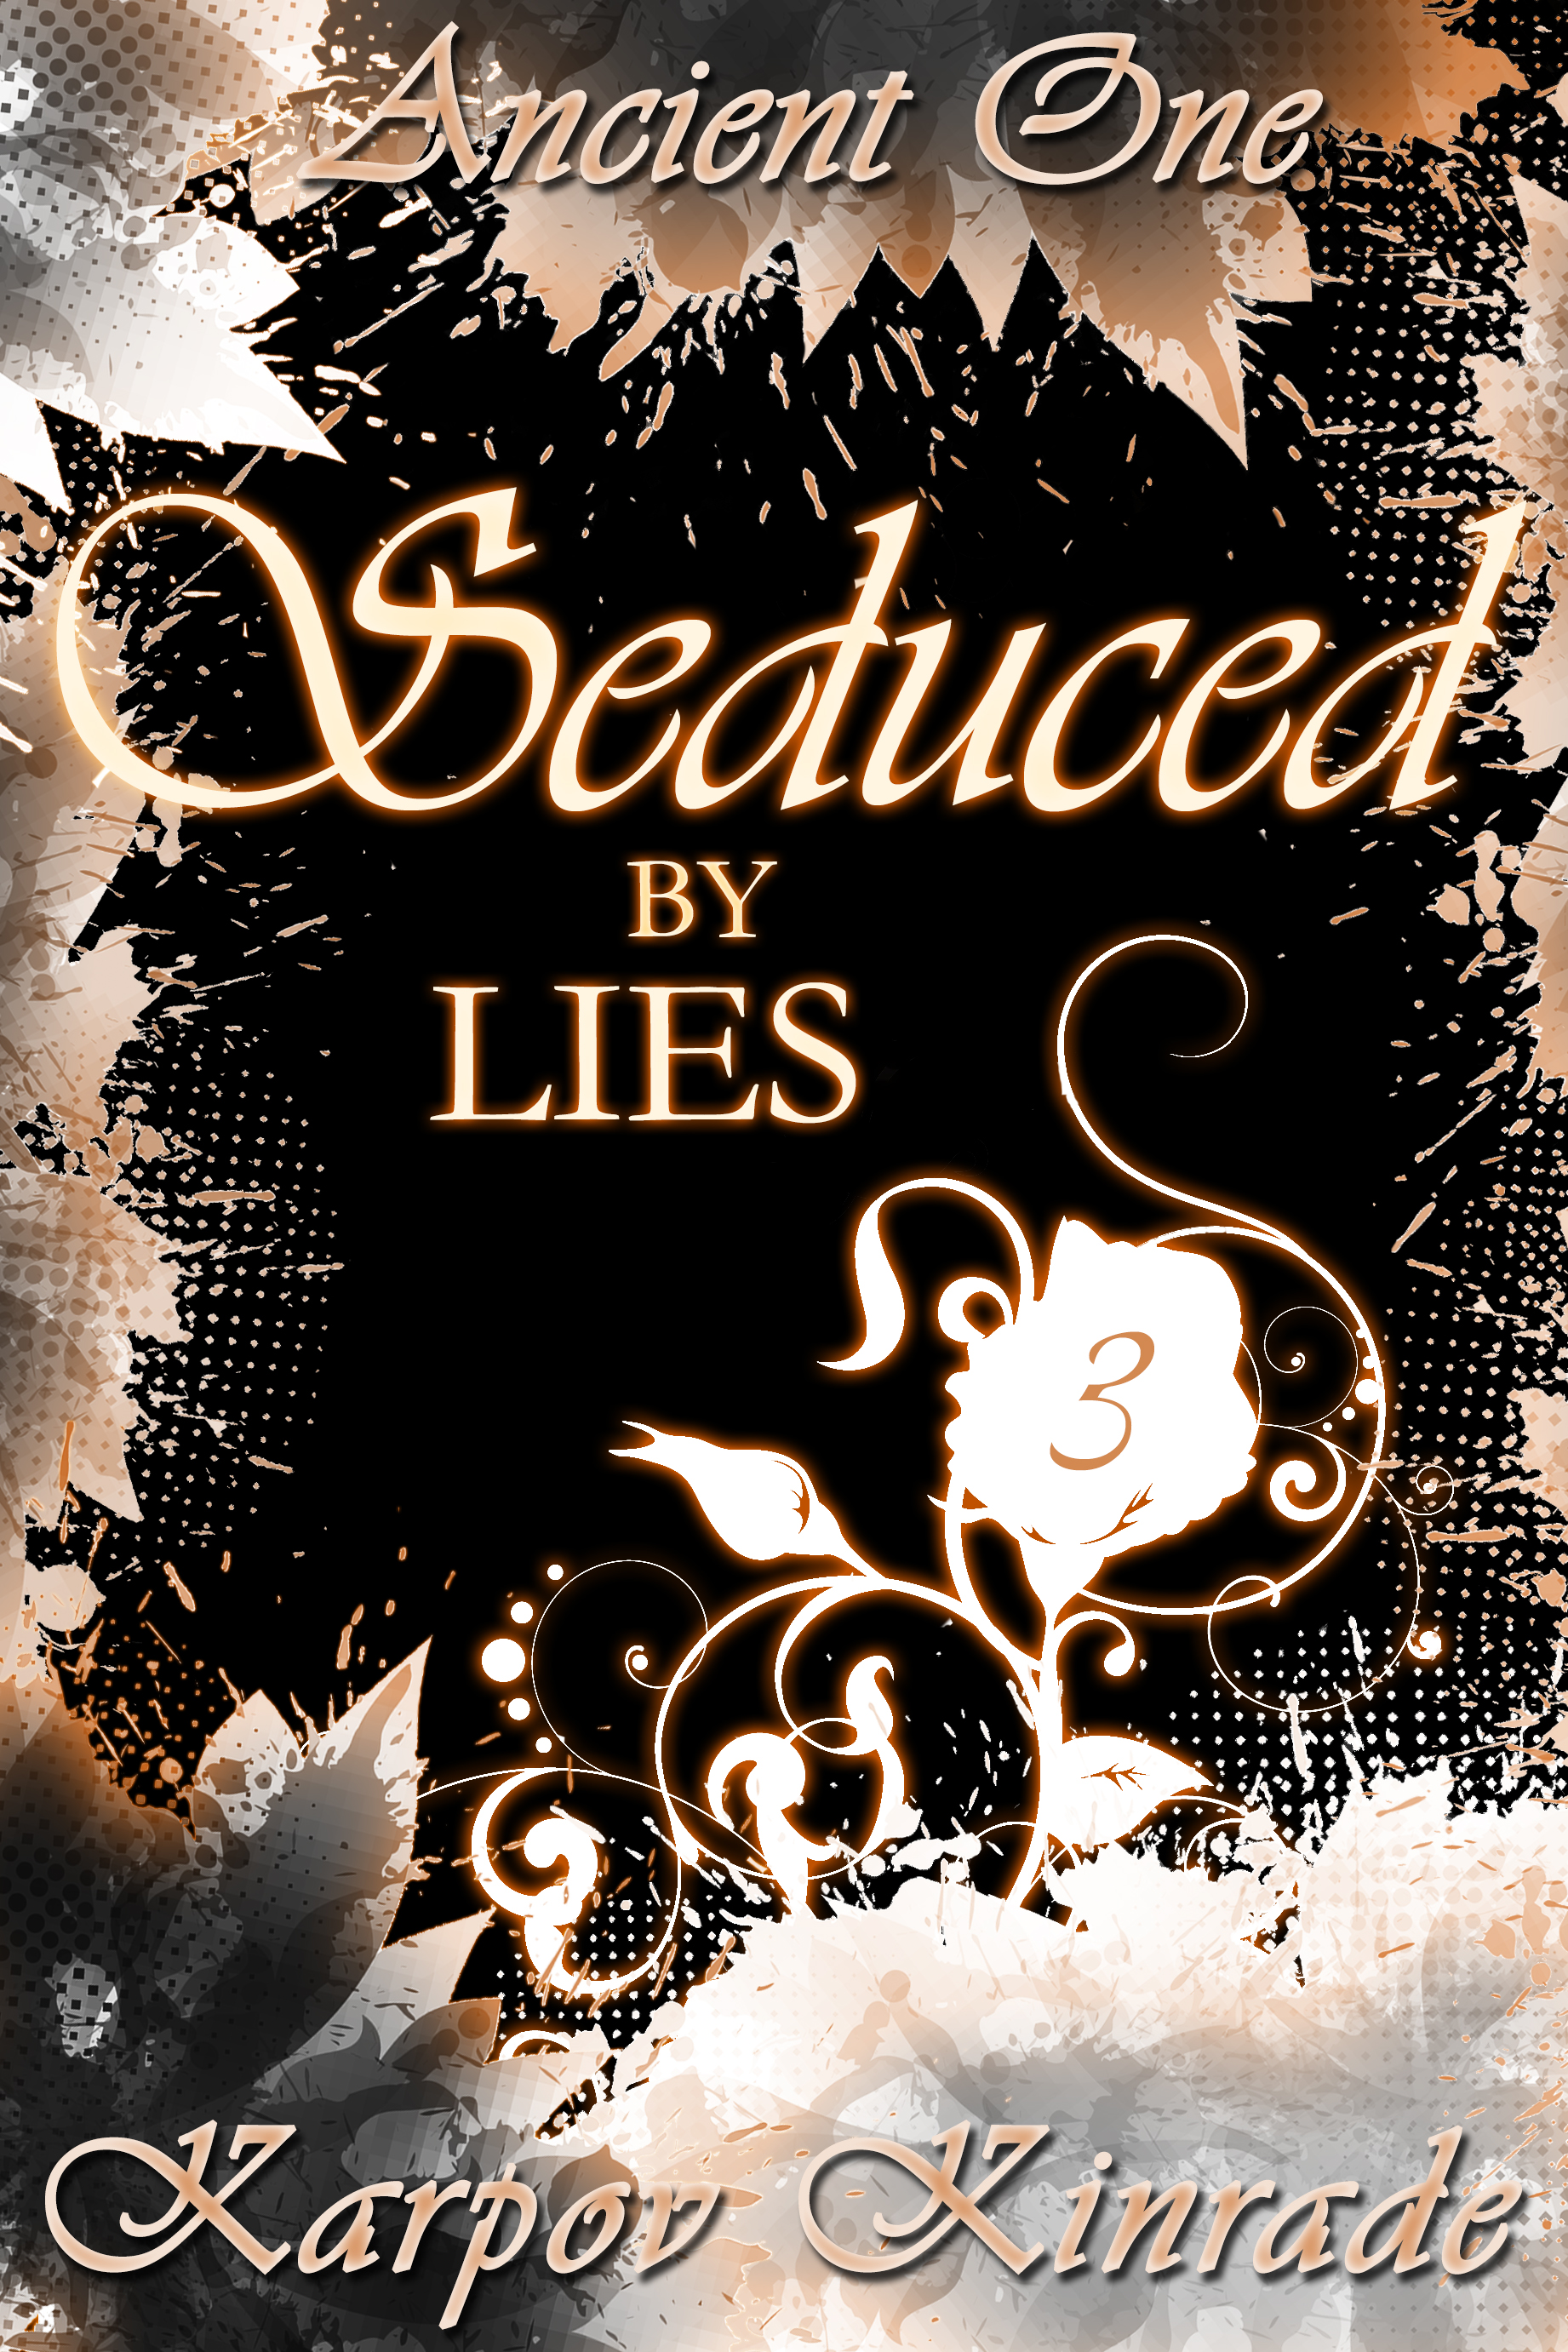 Seduced by Lies, Vol. 3 is here! #AncientOne